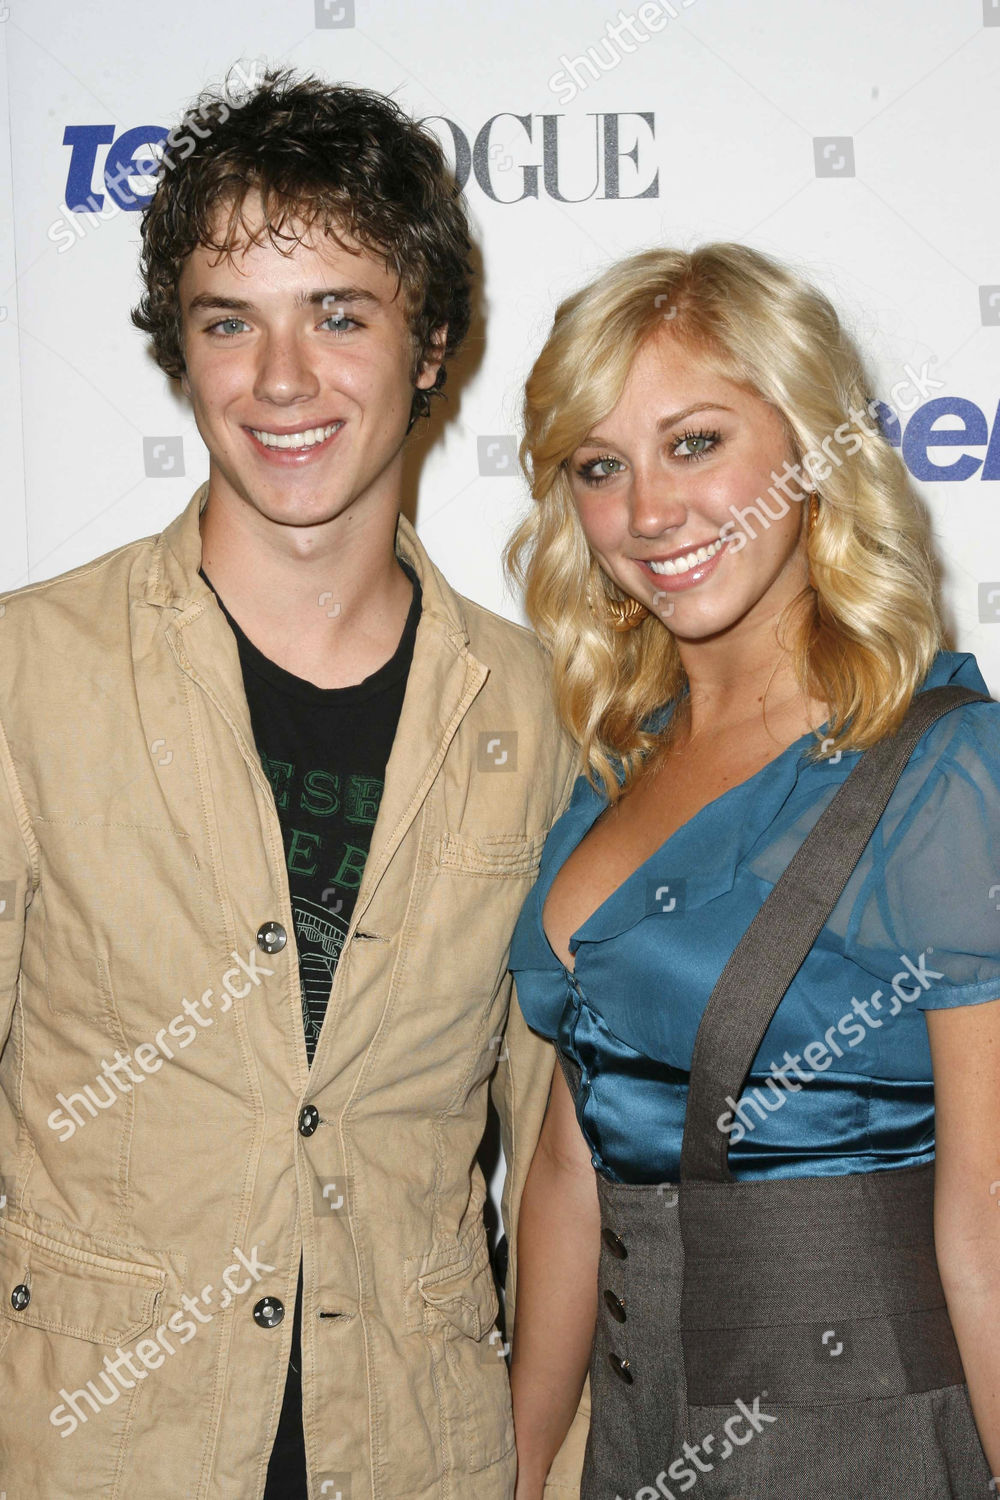 Stock photo of Teen Vogue Young Hollywood Party at Vibiana, Los Angeles, America - 20 Sep 2007